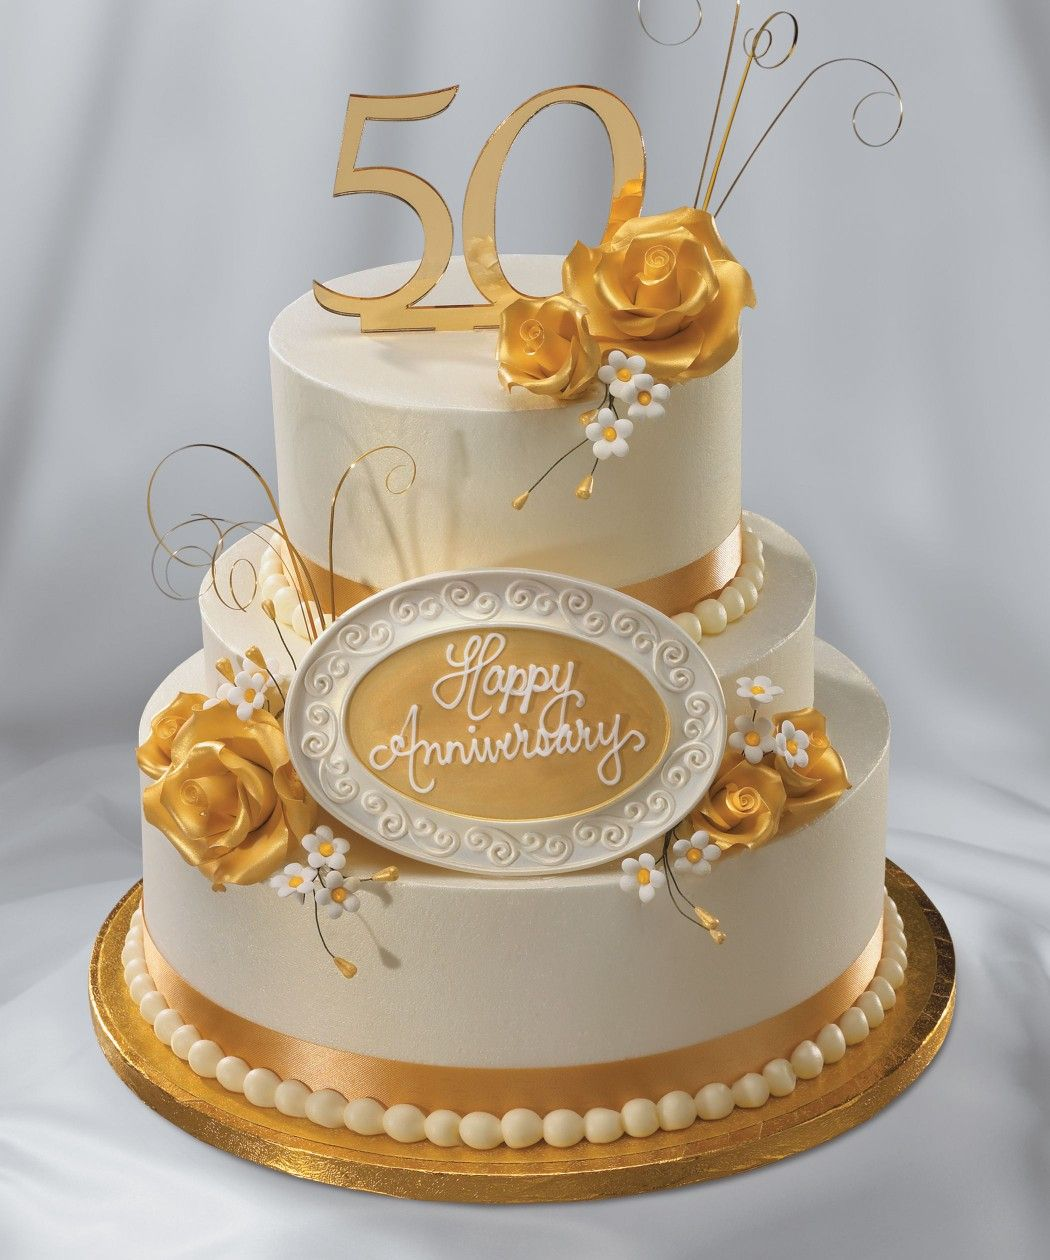 Pin by Sherry Prater on cakes light frost in 2019 50th